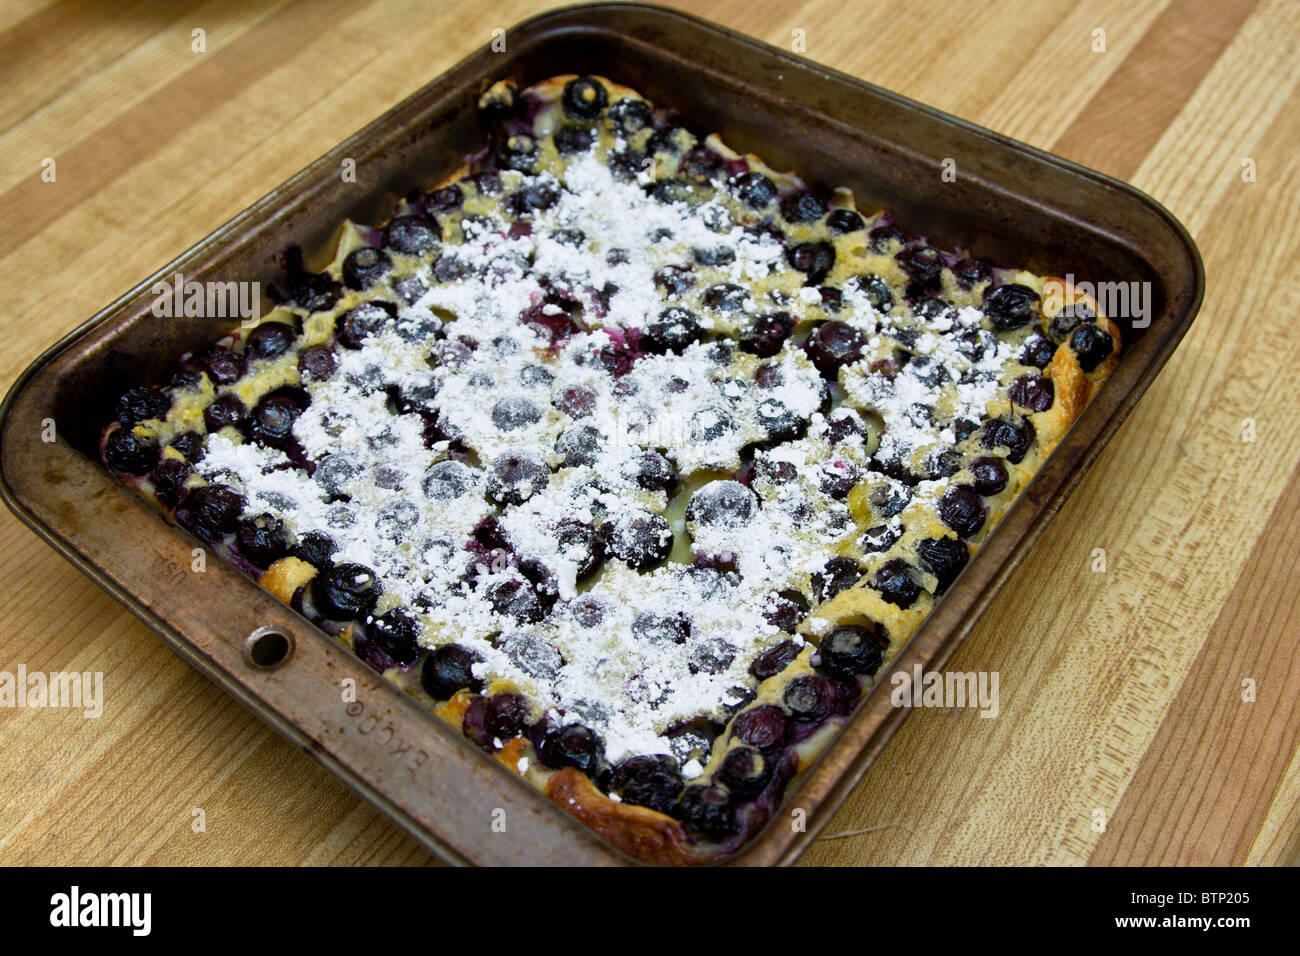 home made baked blueberry pie kitchen counter - Stock Image